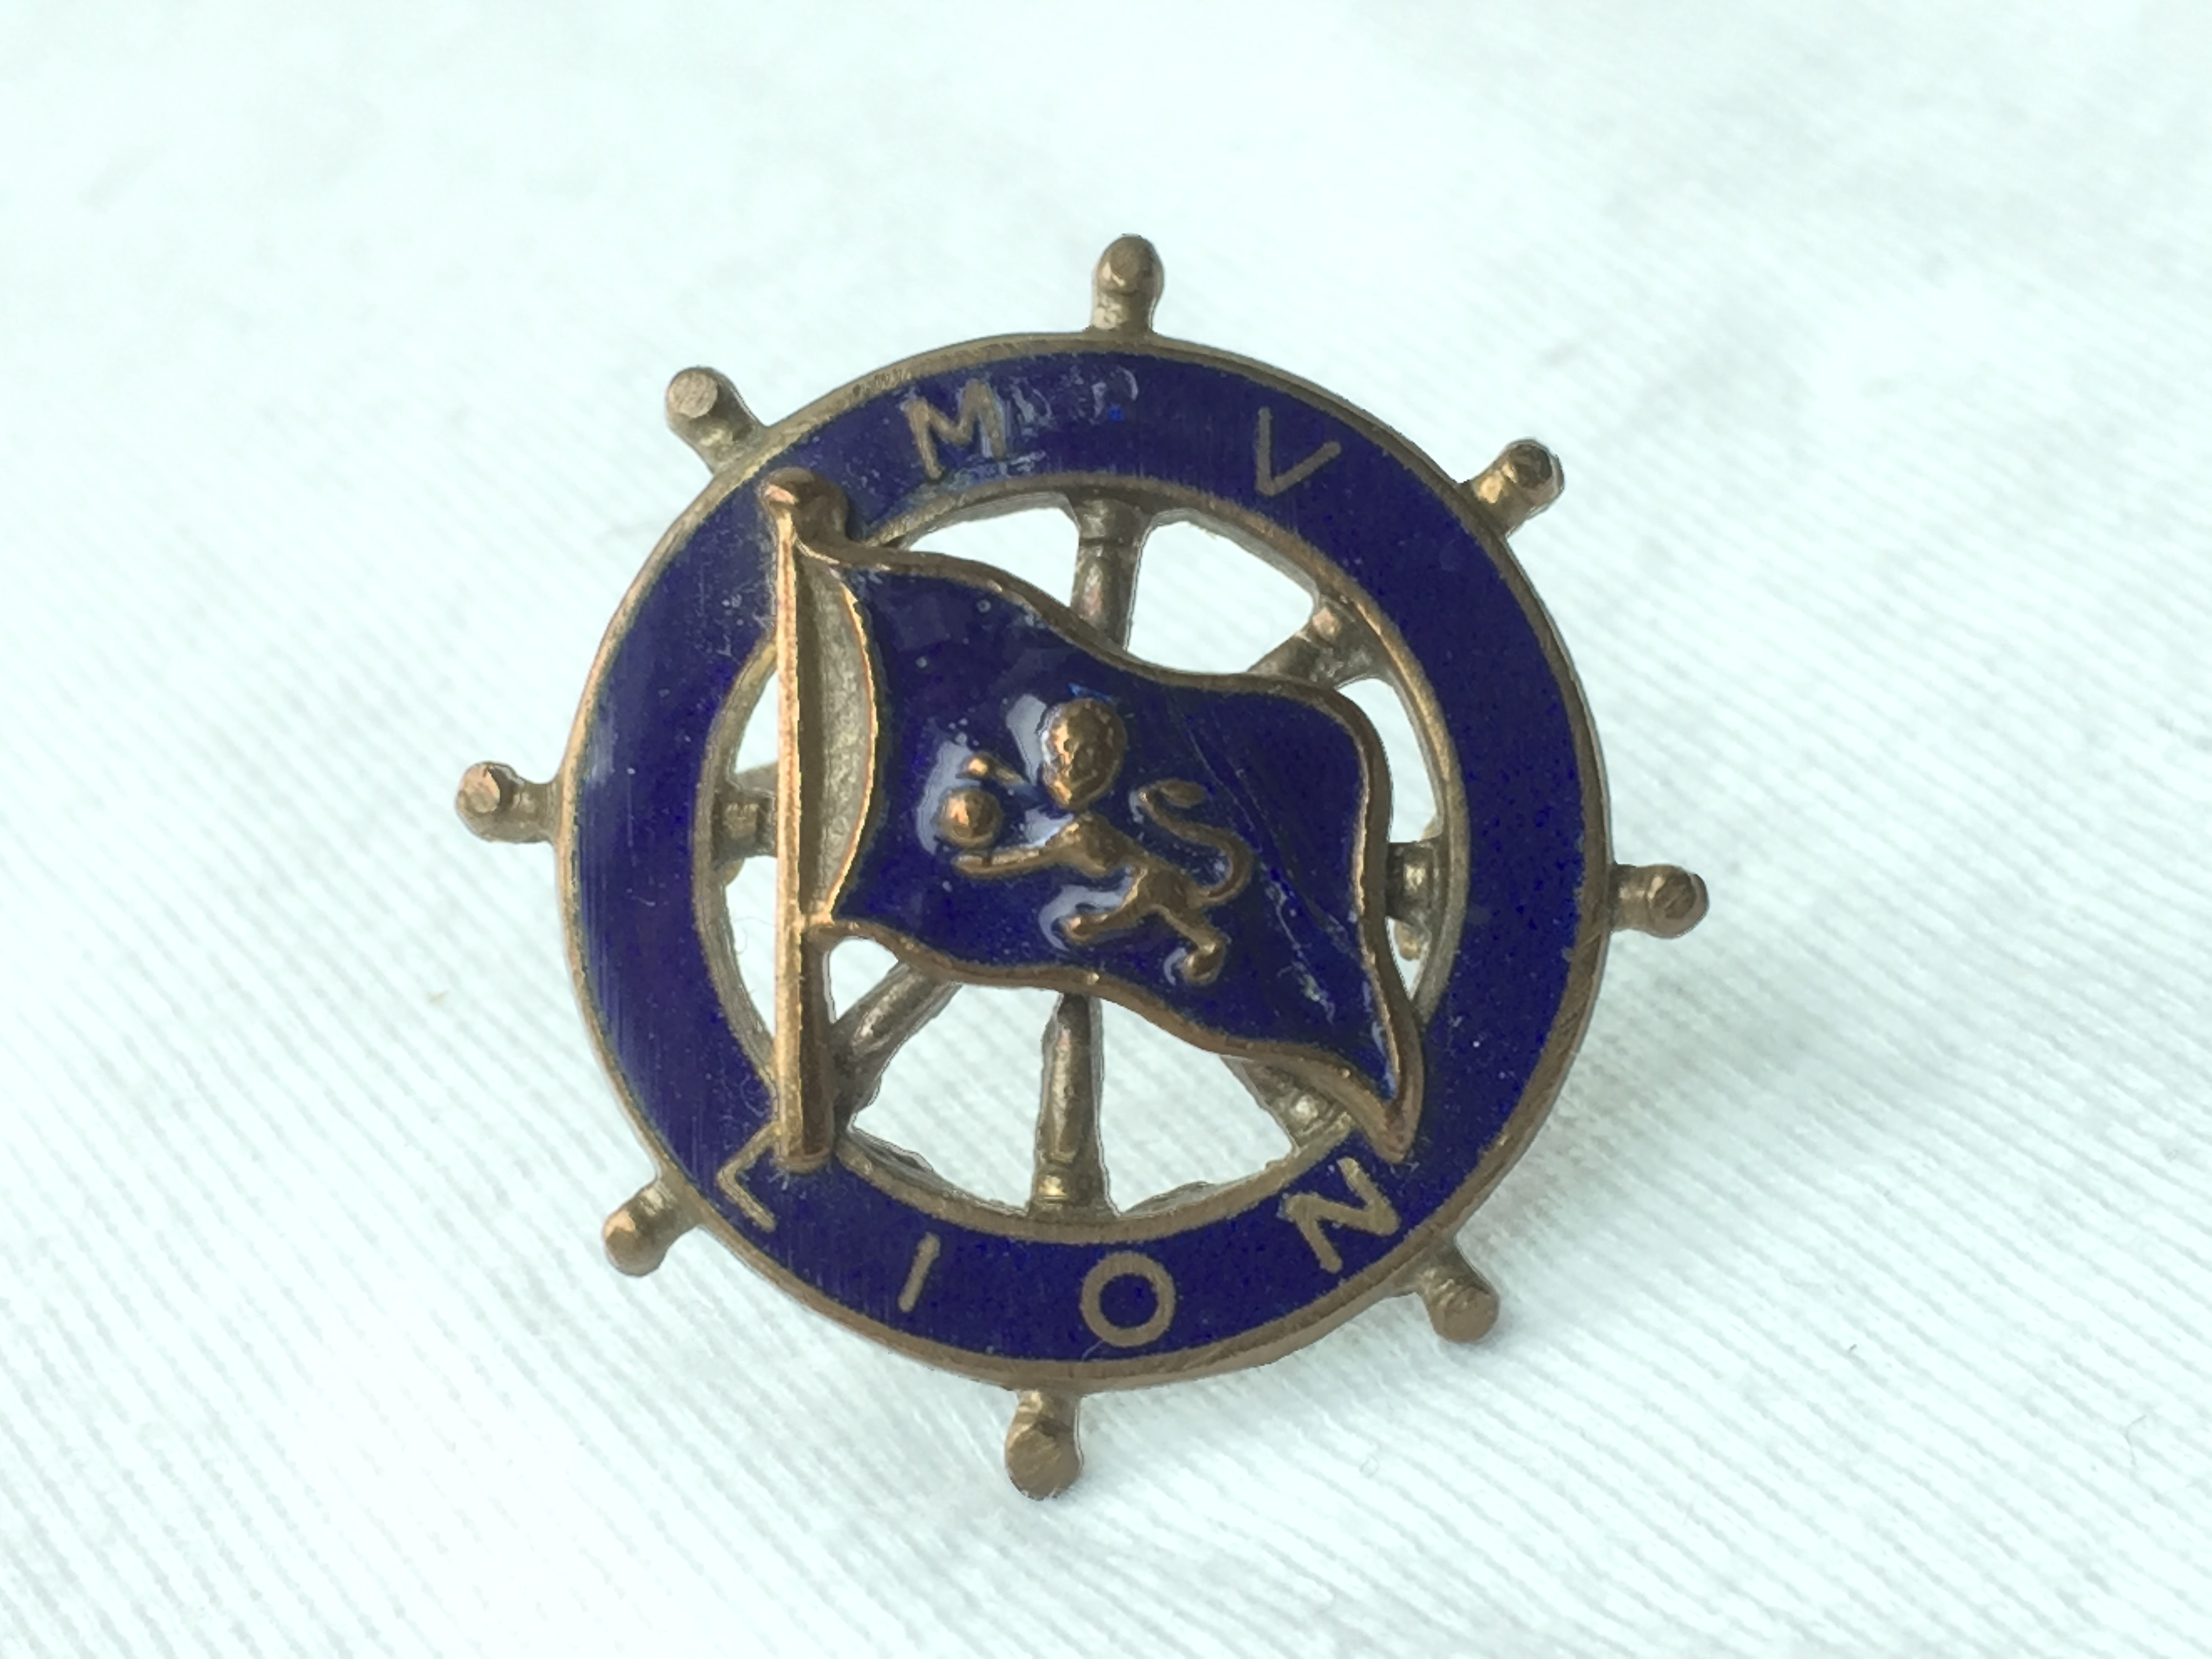 LAPEL PIN BADGE FROM THE BURNS AND LAIRDS LINE VESSEL THE MV LION